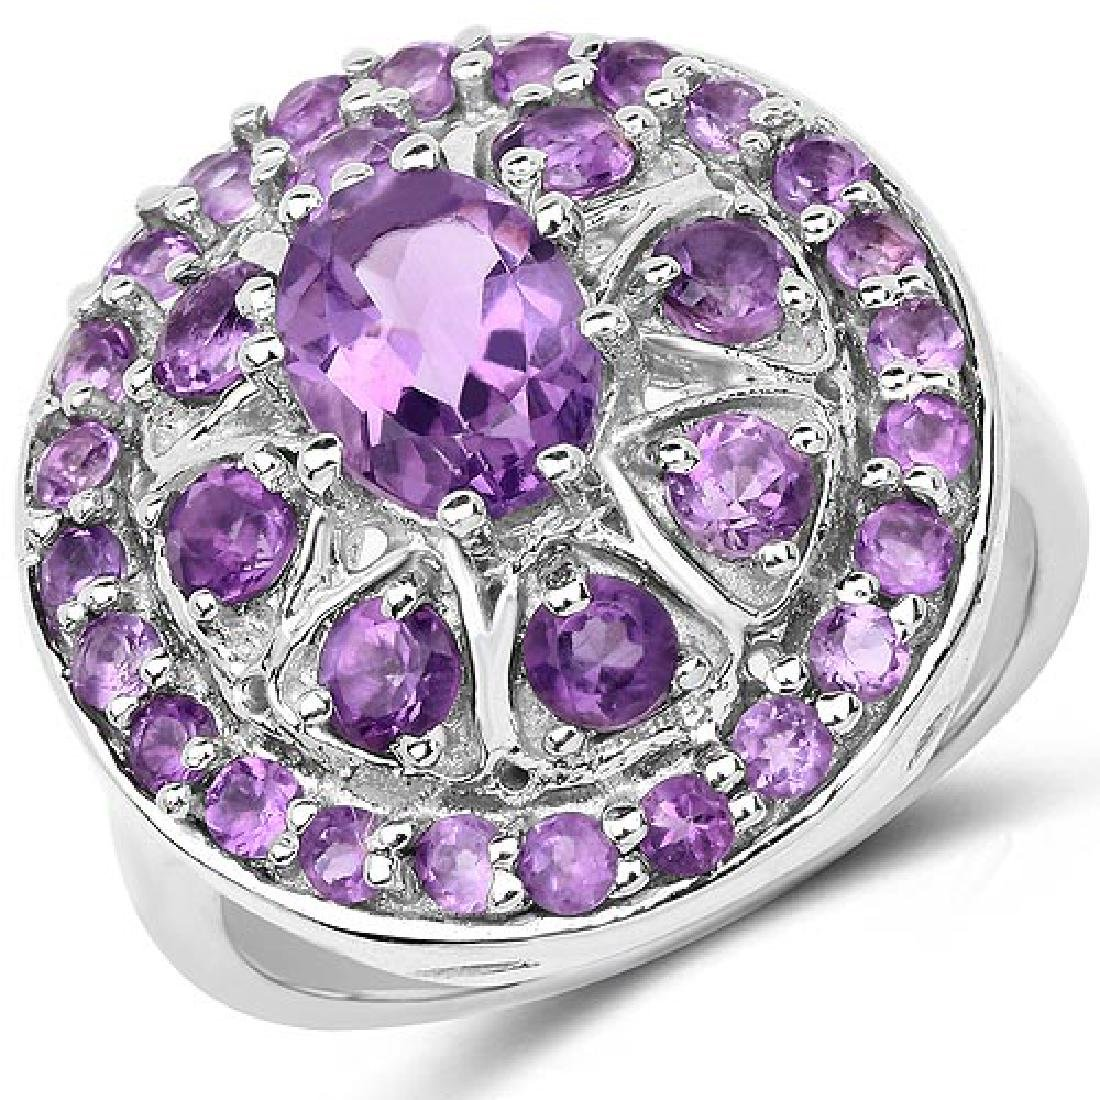 2.67 Carat Genuine Amethyst .925 Sterling Silver Ring